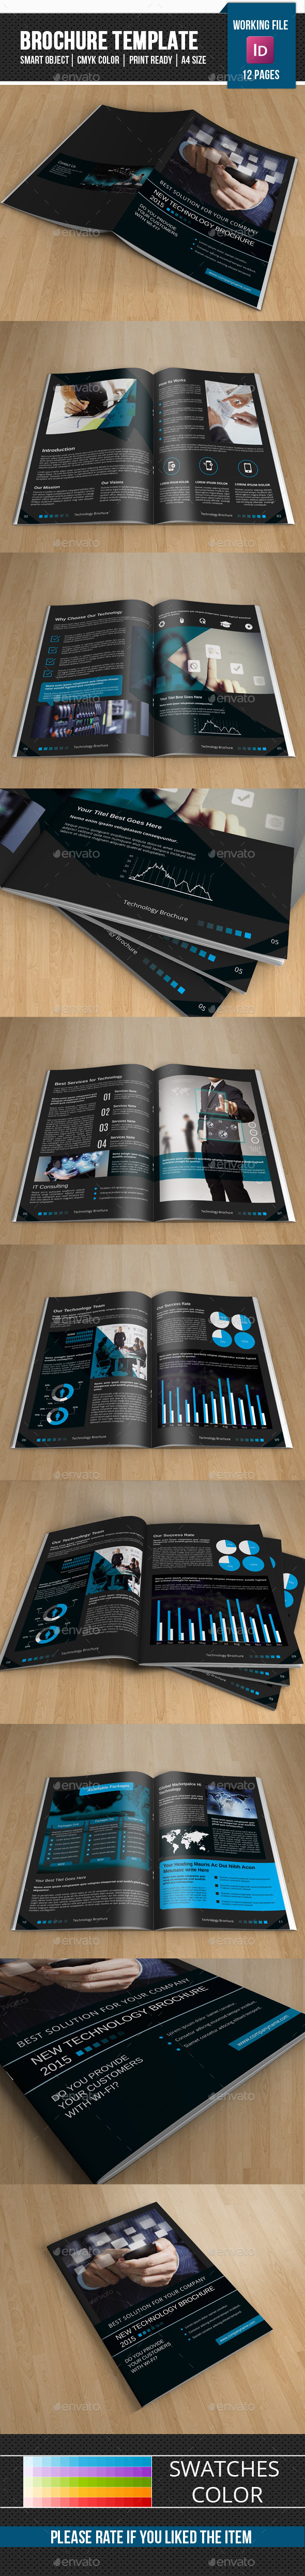 GraphicRiver Technology Brochure Template-V265 11868912